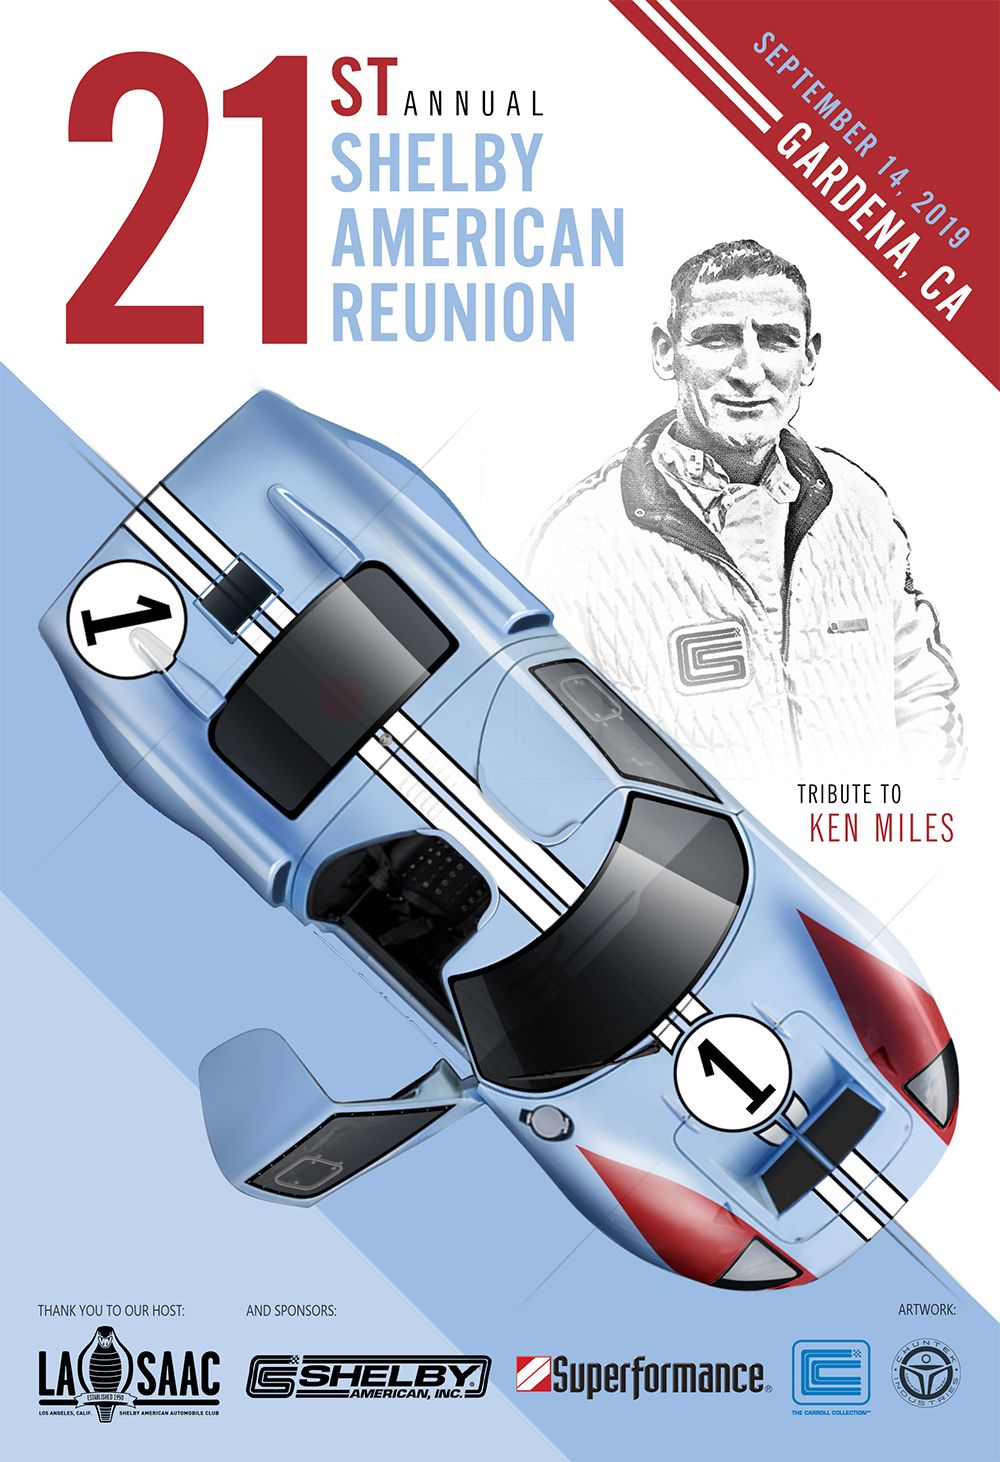 Twenty Four Hour Legend 21st Shelby American Reunion Poster